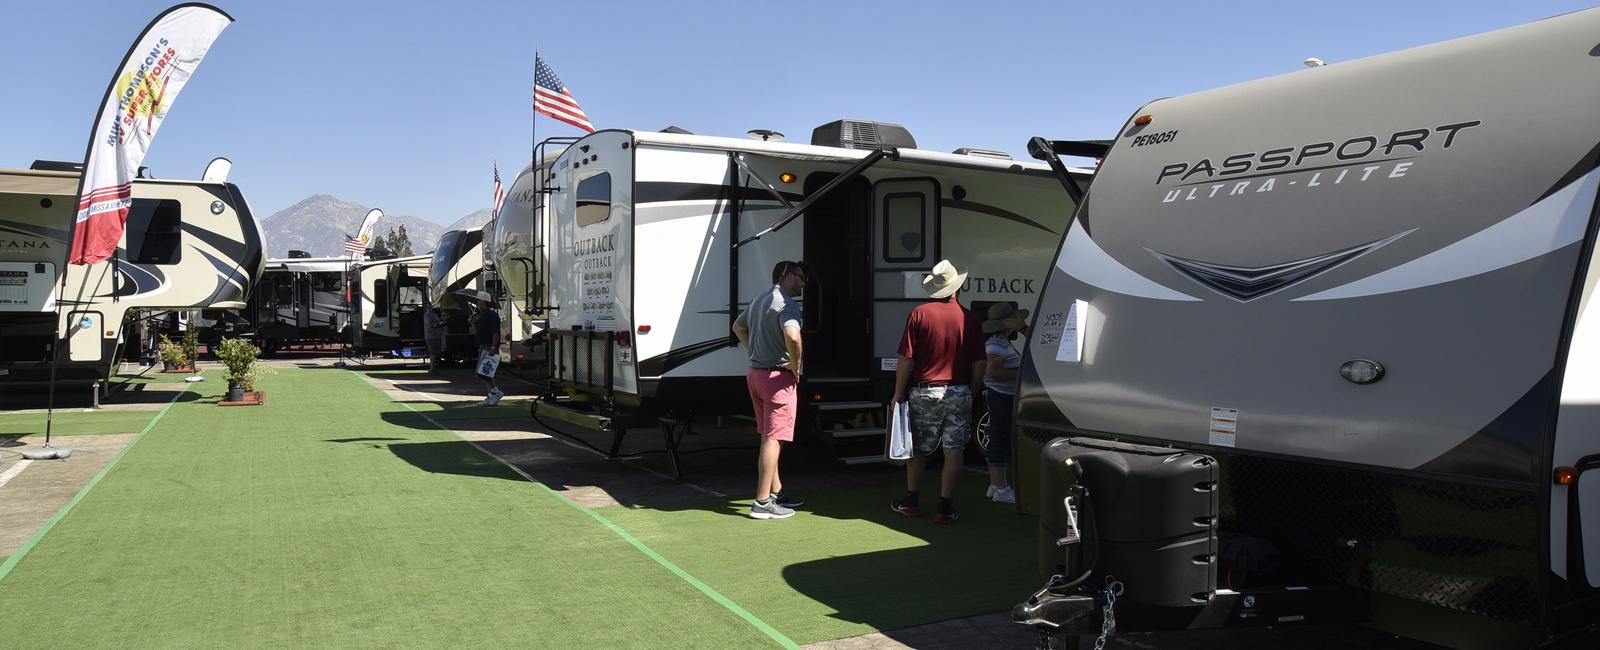 RV Trade ociations Voice Support For House Bill To Fix ... on engine shed floor plans, railroad depot floor plans, trailer house floor plans, locomotive house plans, ho locomotive shed floor plans, railroad section house floor plans,